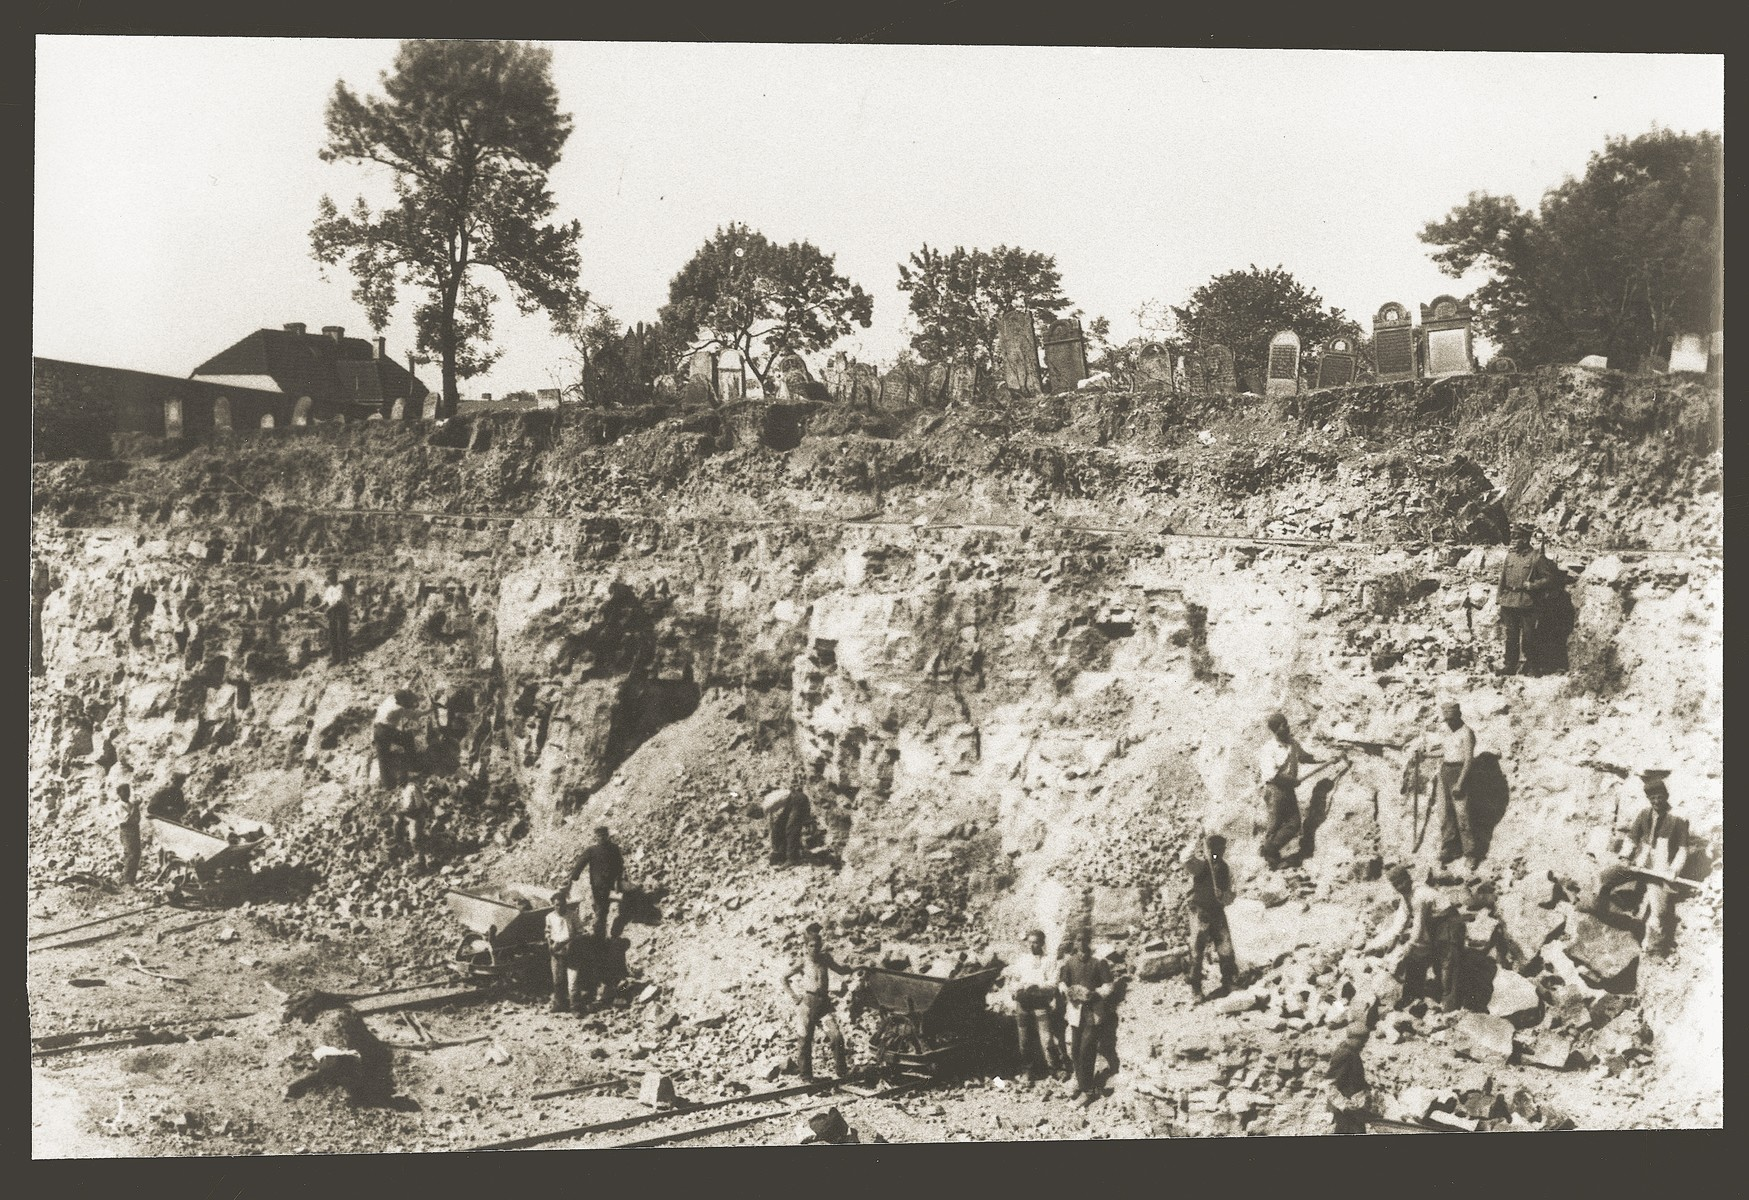 Jews at forced labor working on a hillside beneath the Jewish cemetery in Kamionka.